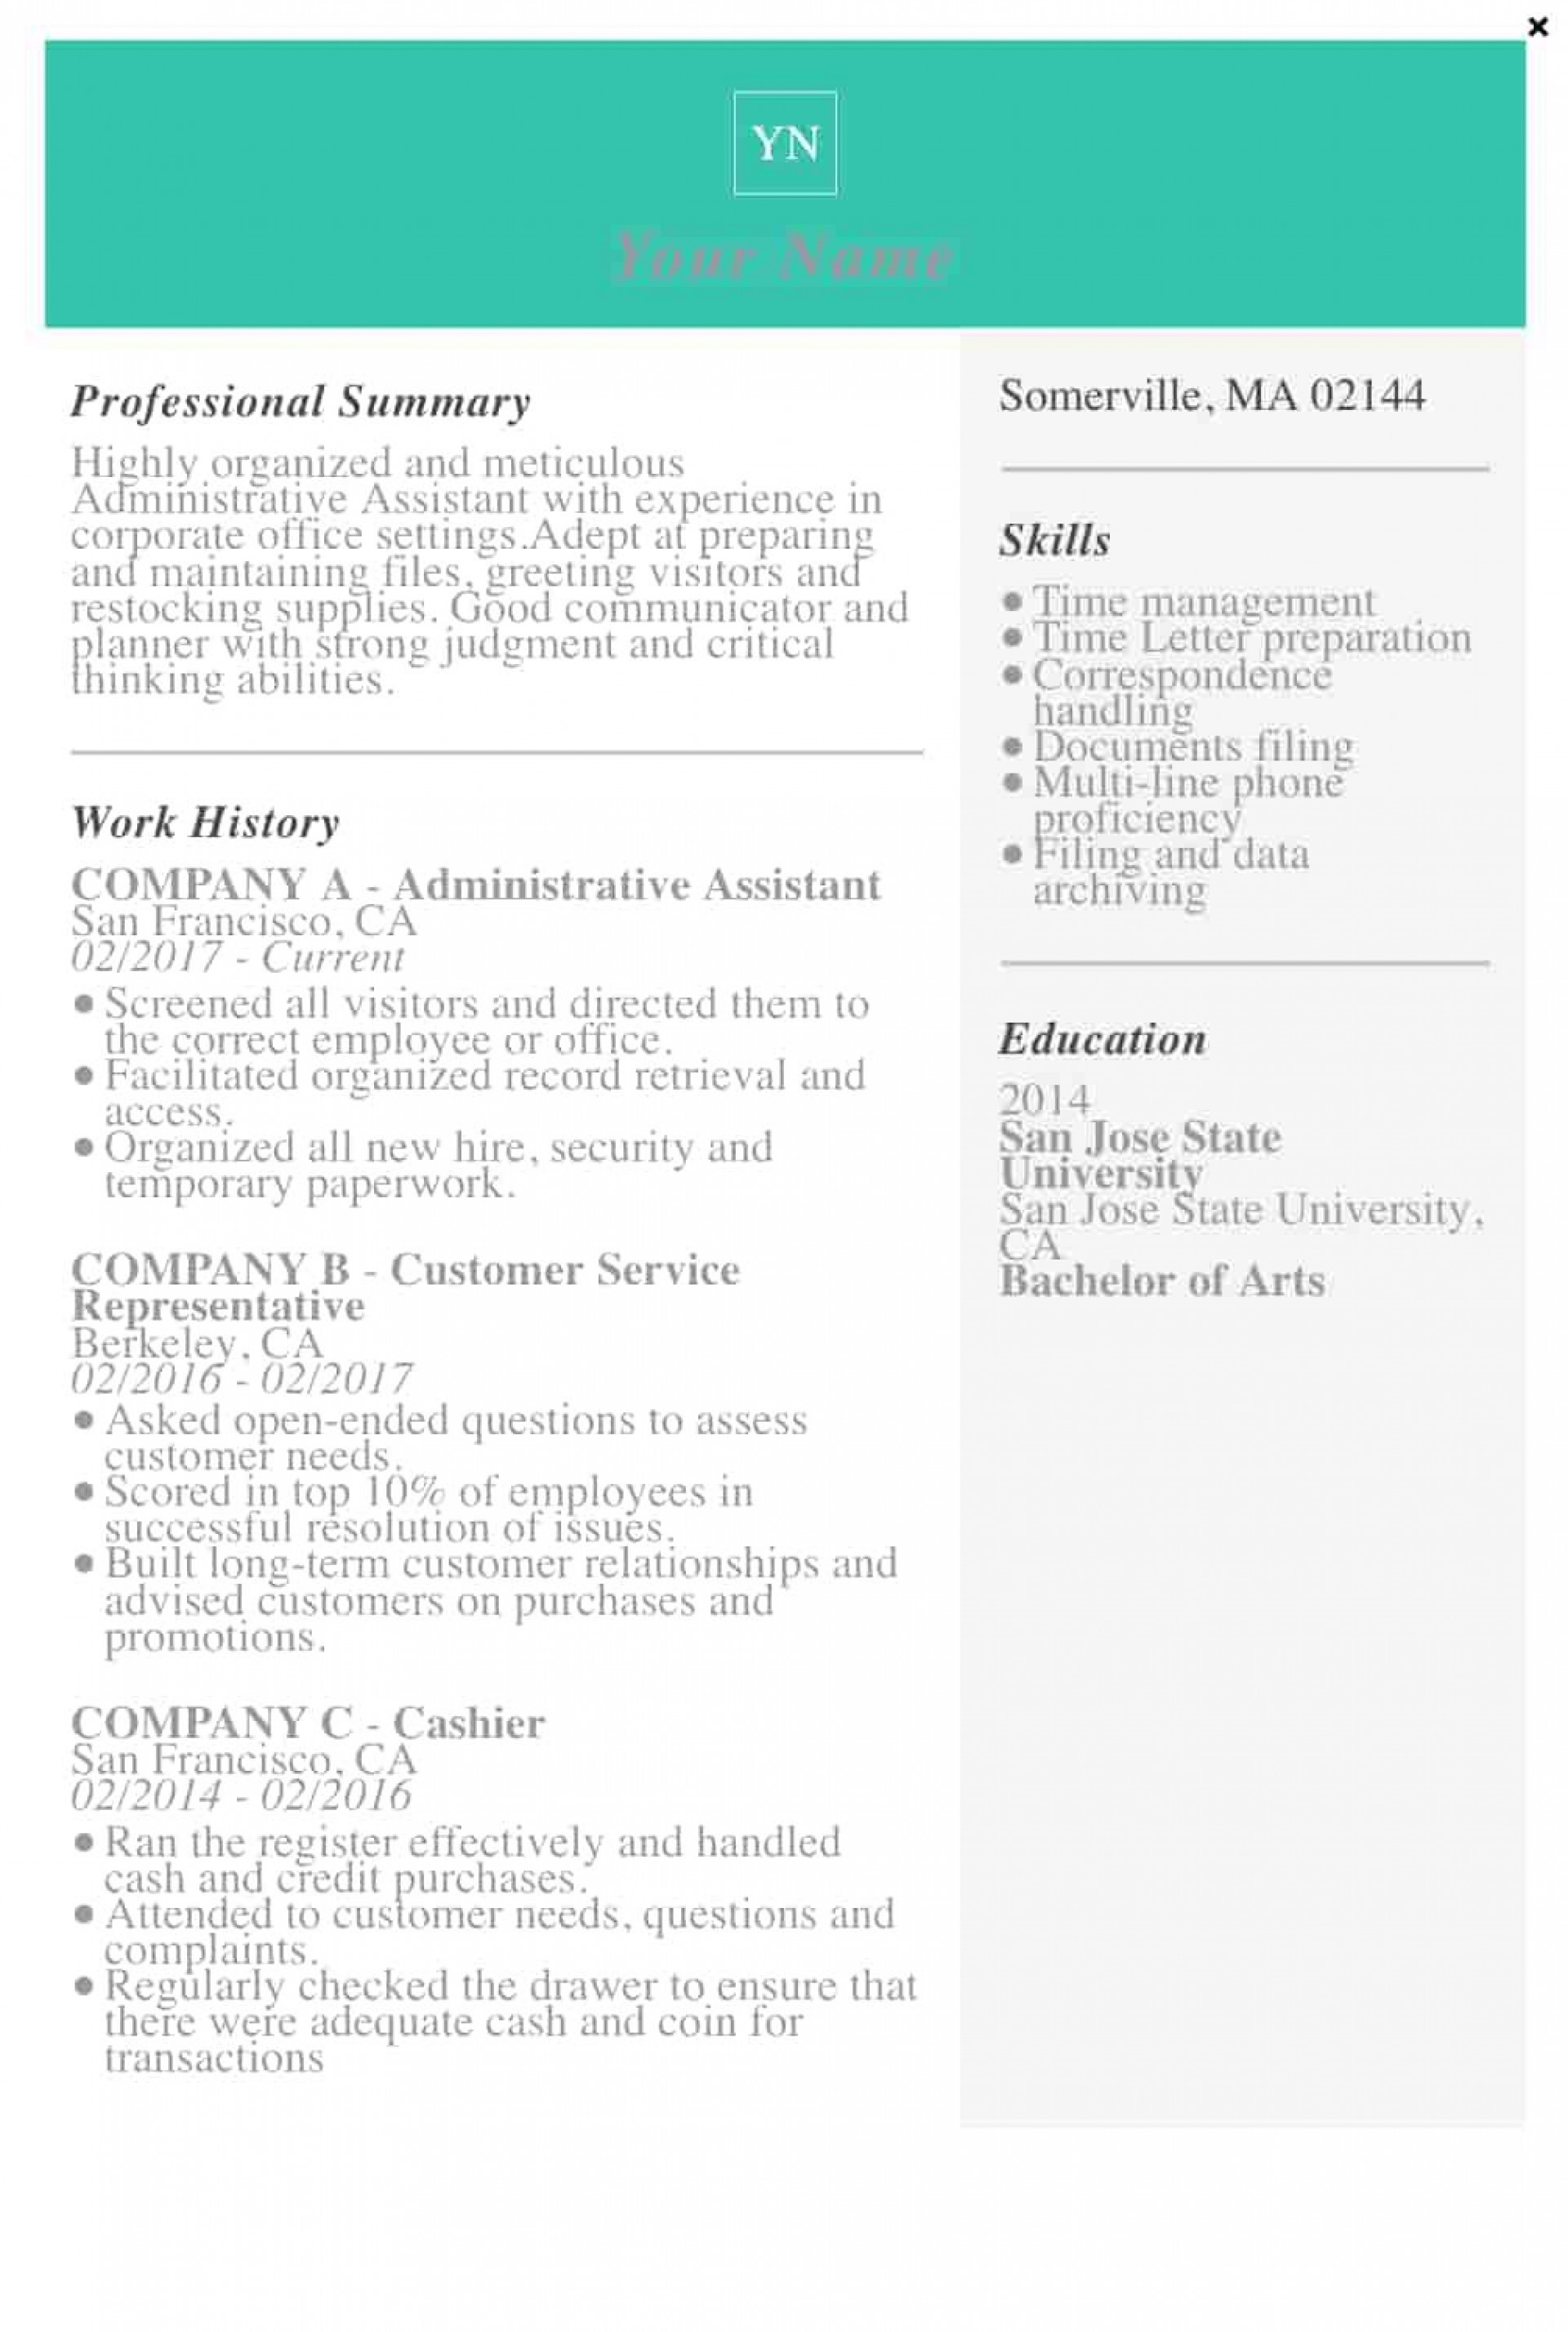 009 Awesome Resume Template Microsoft Word 2019 Picture  Free1920